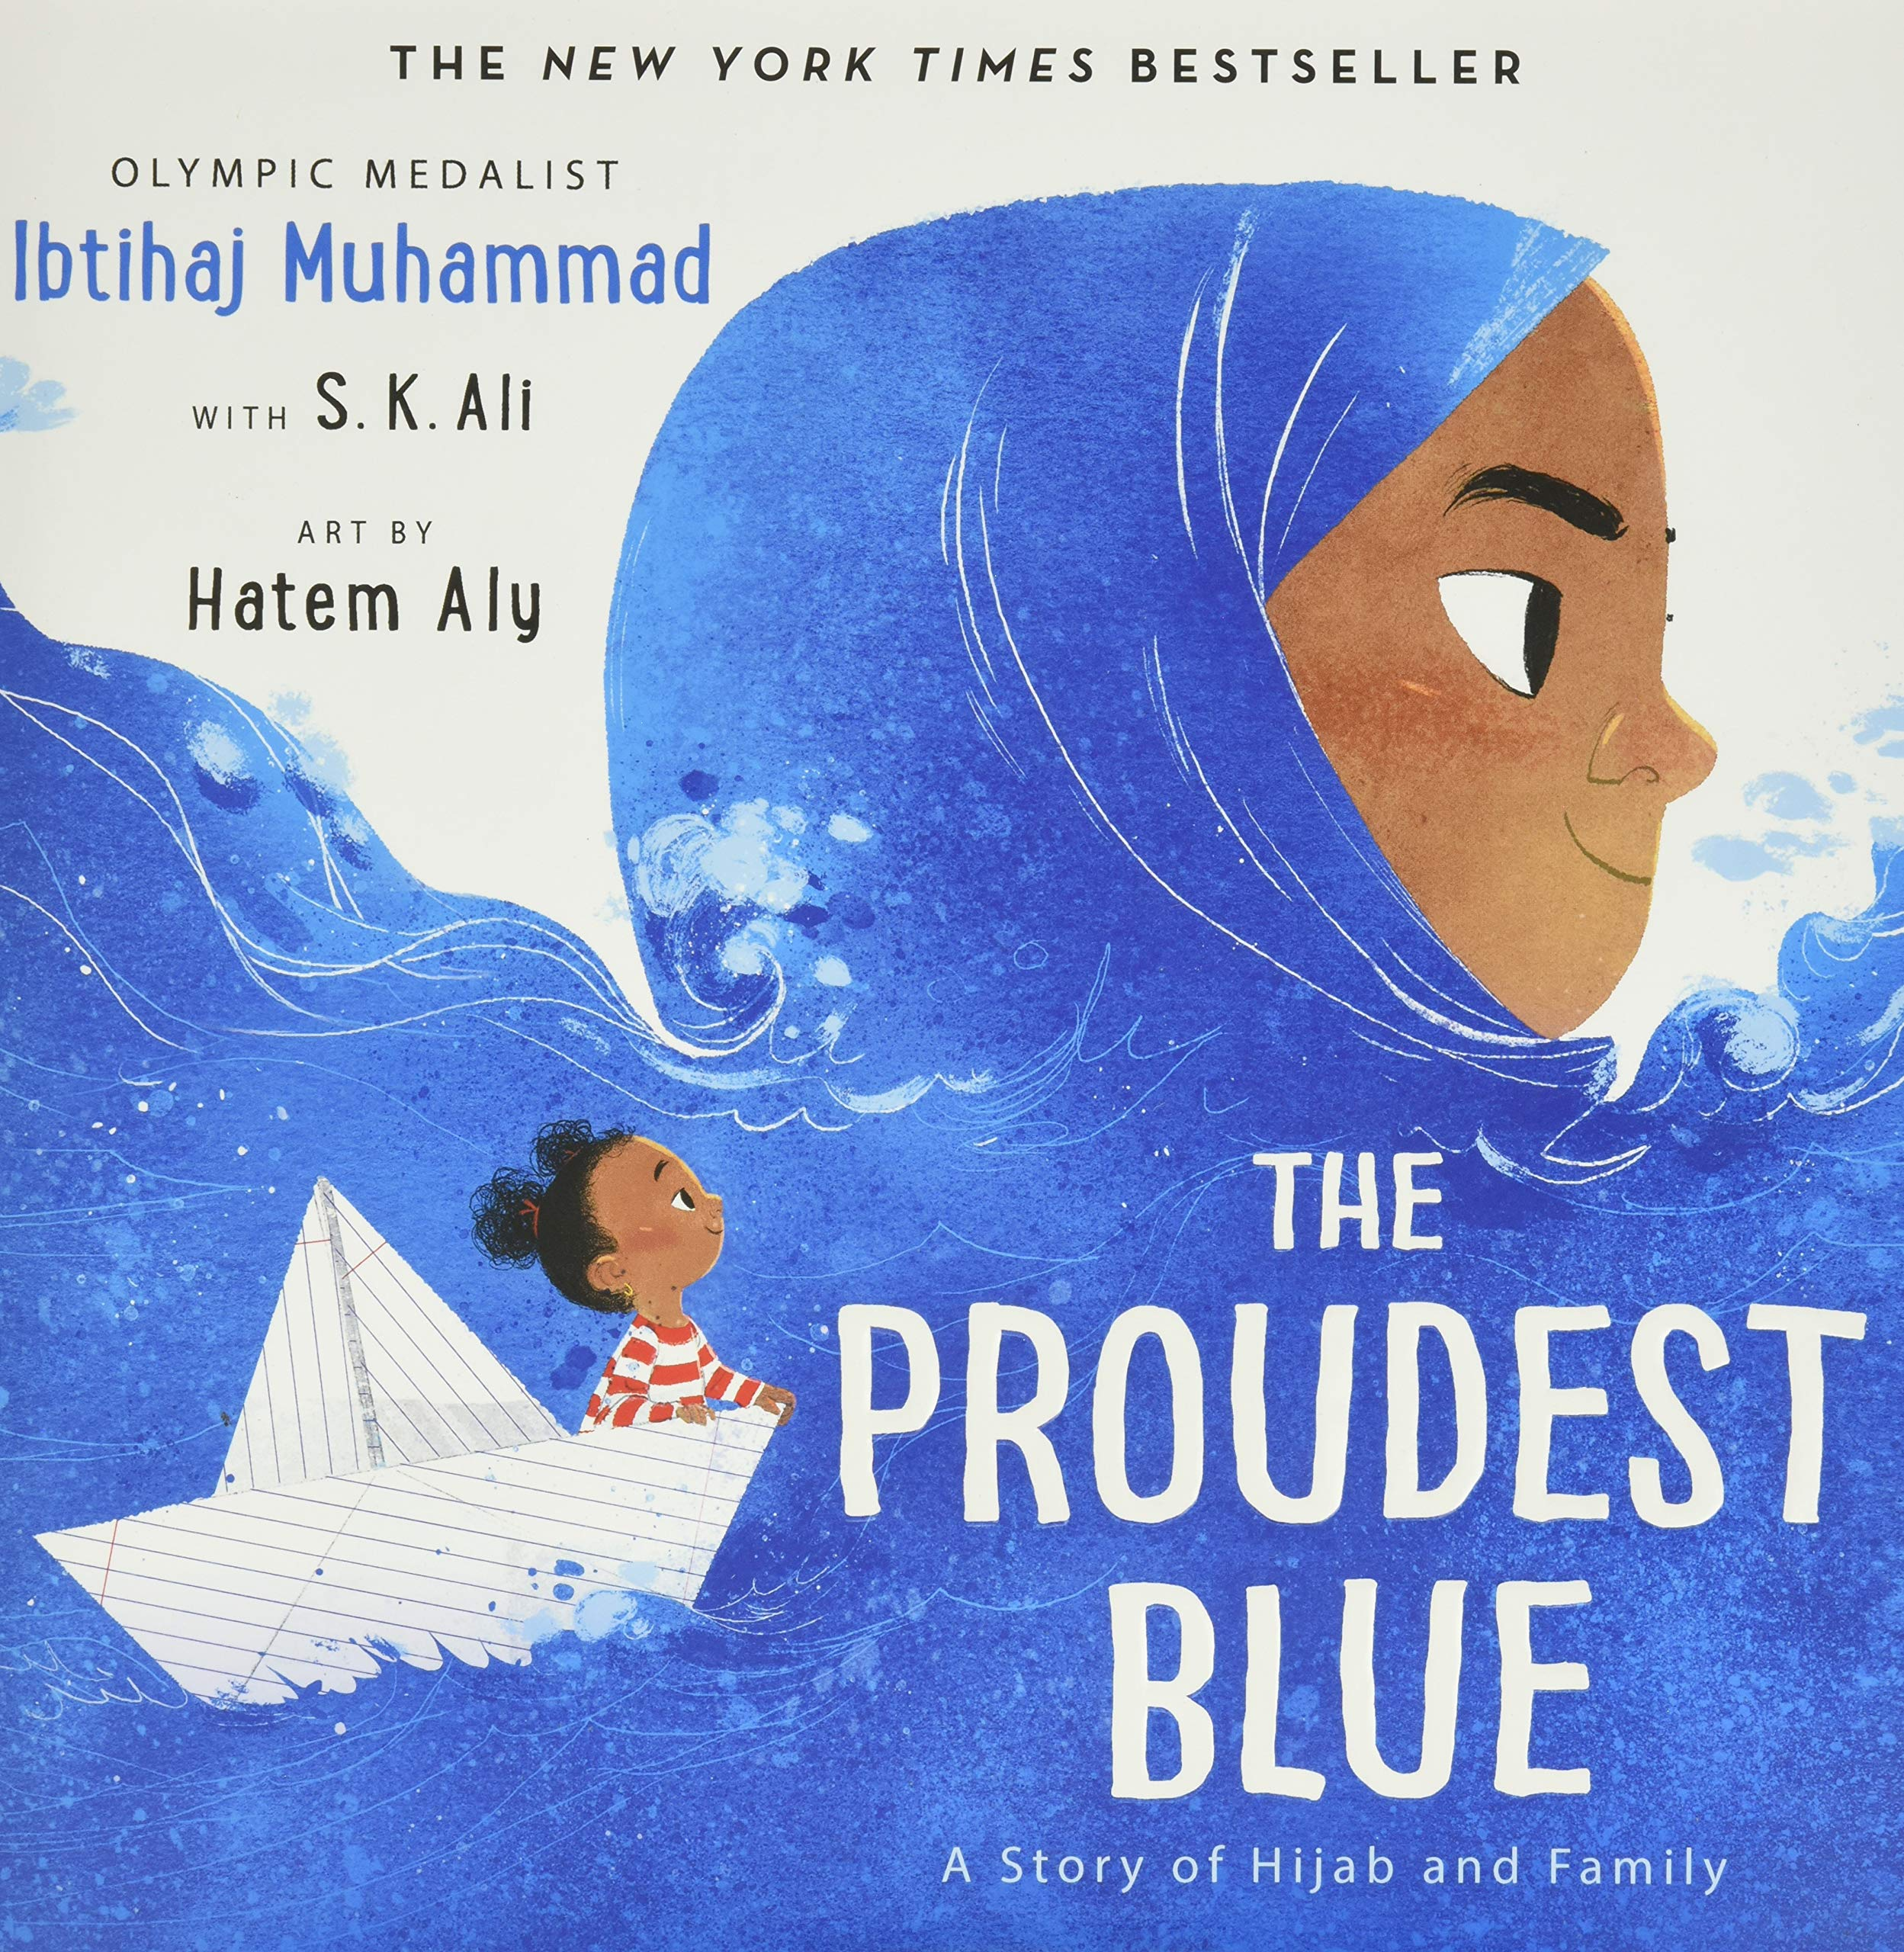 """Cover of """"The Proudest Blue"""" by Ibtihaj Muhammad and S.K. Ali"""